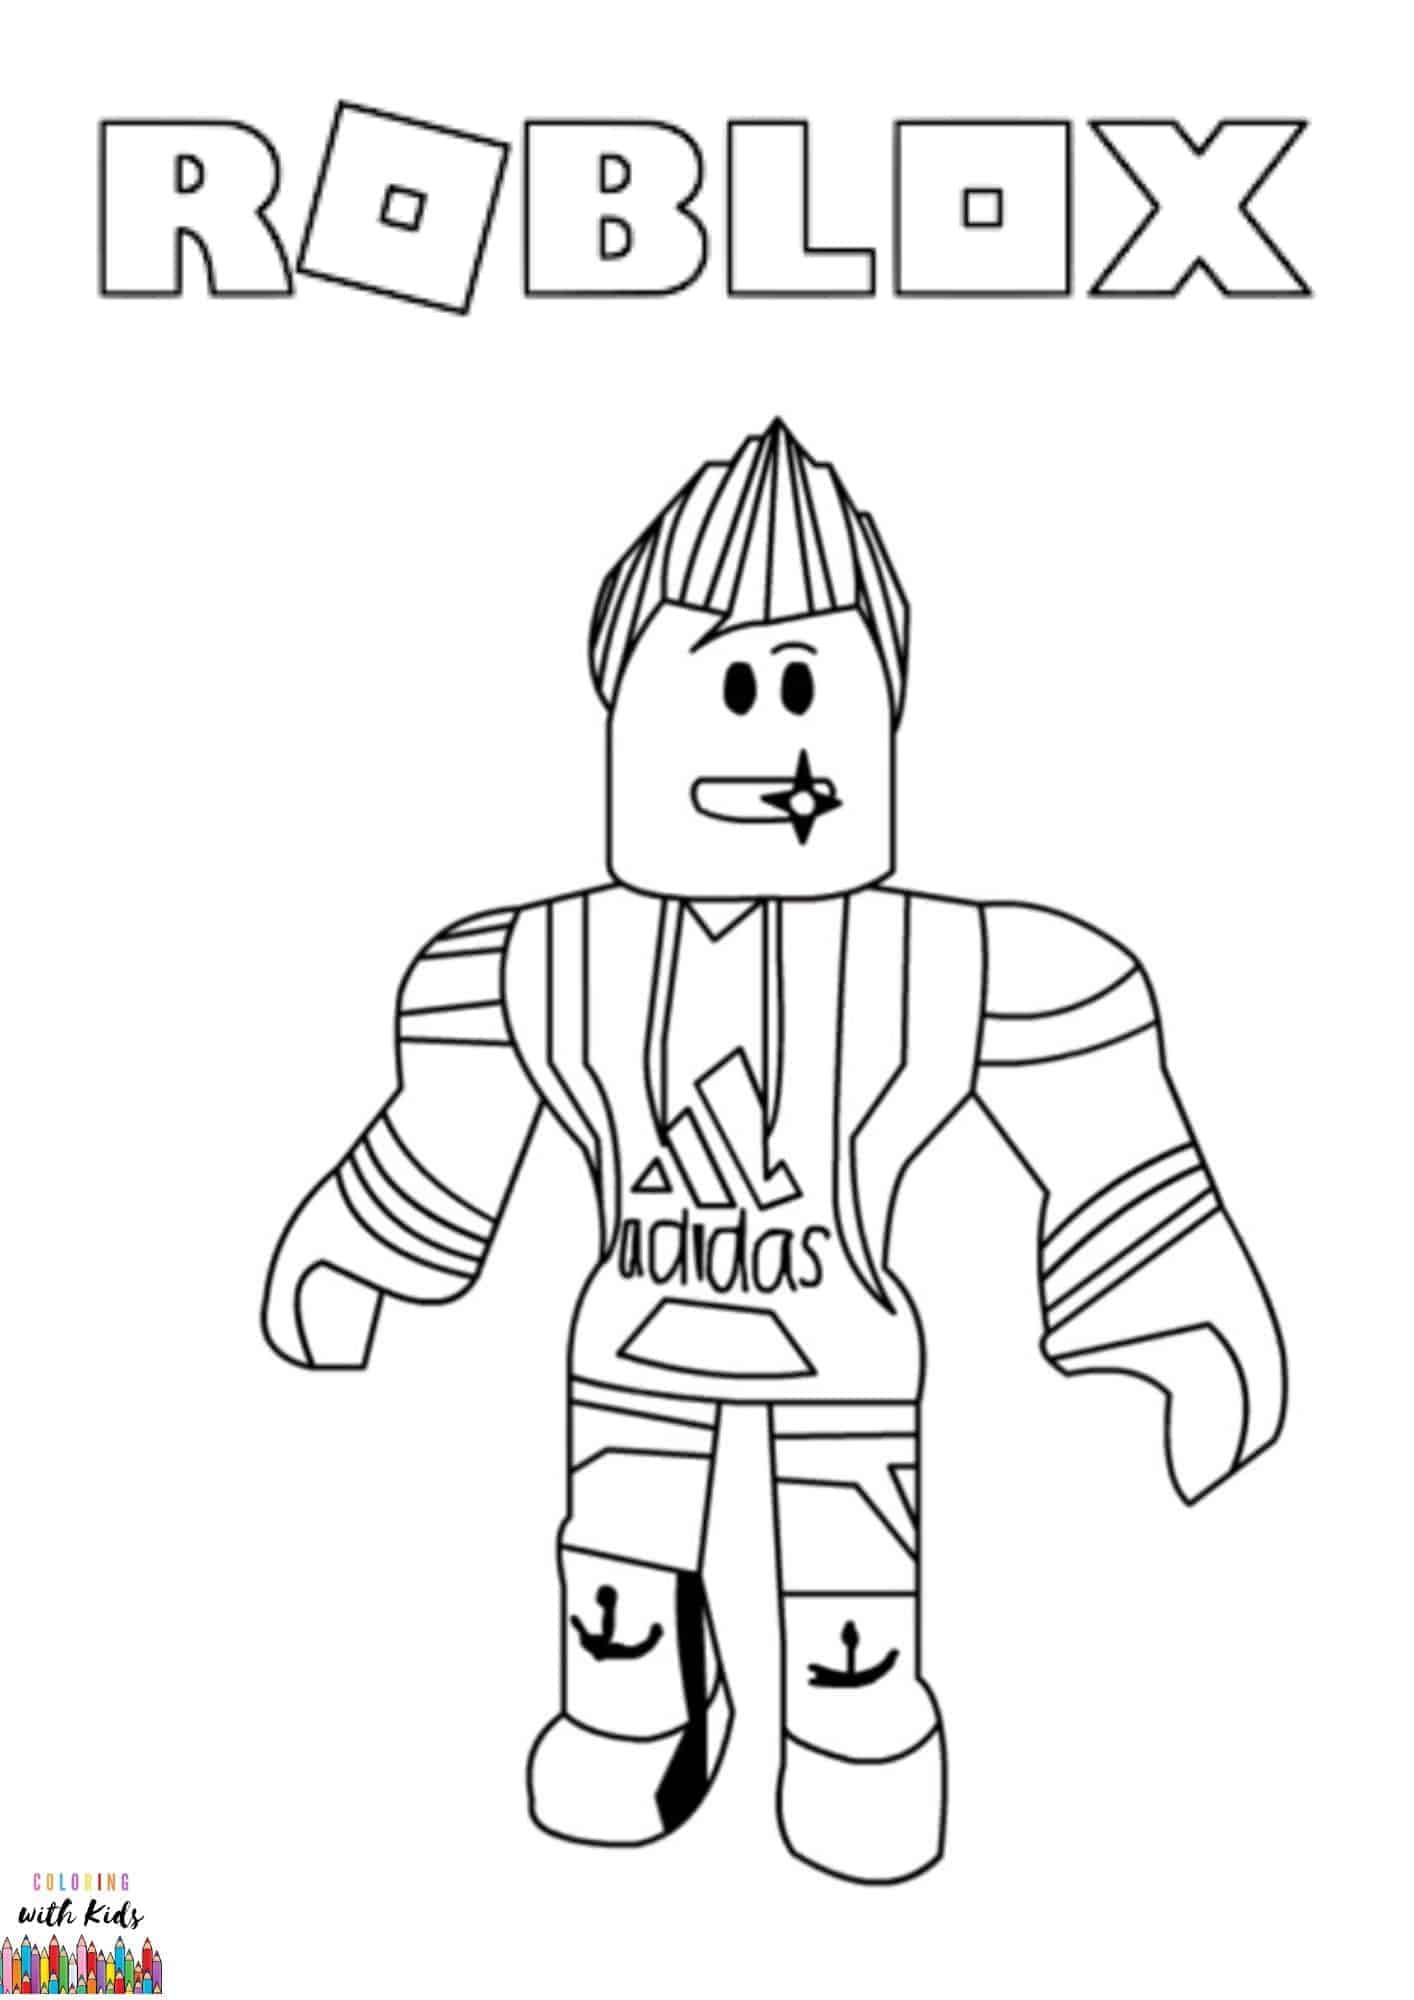 Roblox avatar drawing coloring page | coloringwithkids.com